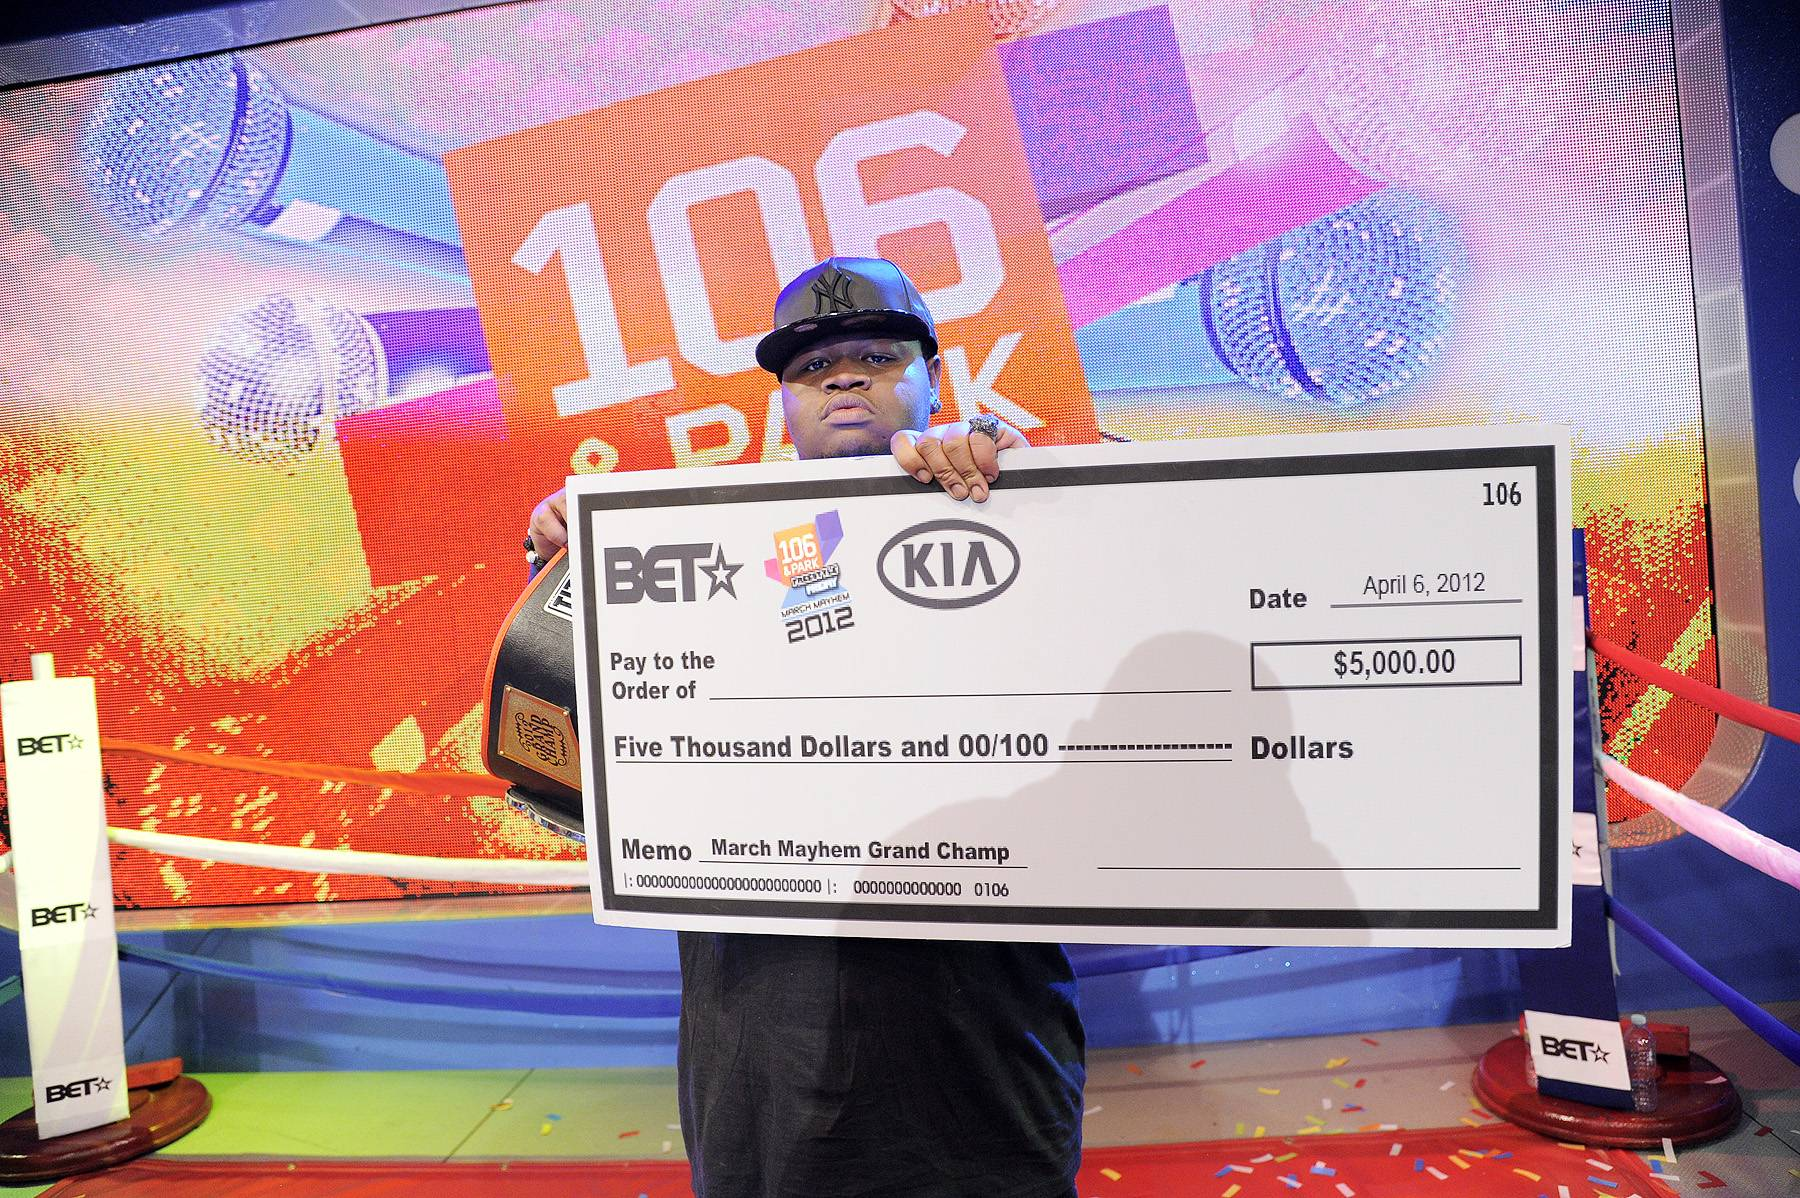 Best of the Best - Freestyle Friday champion Relly with $5,000 check from KIA at 106 & Park, April 6, 2012. (photo: John Ricard / BET)